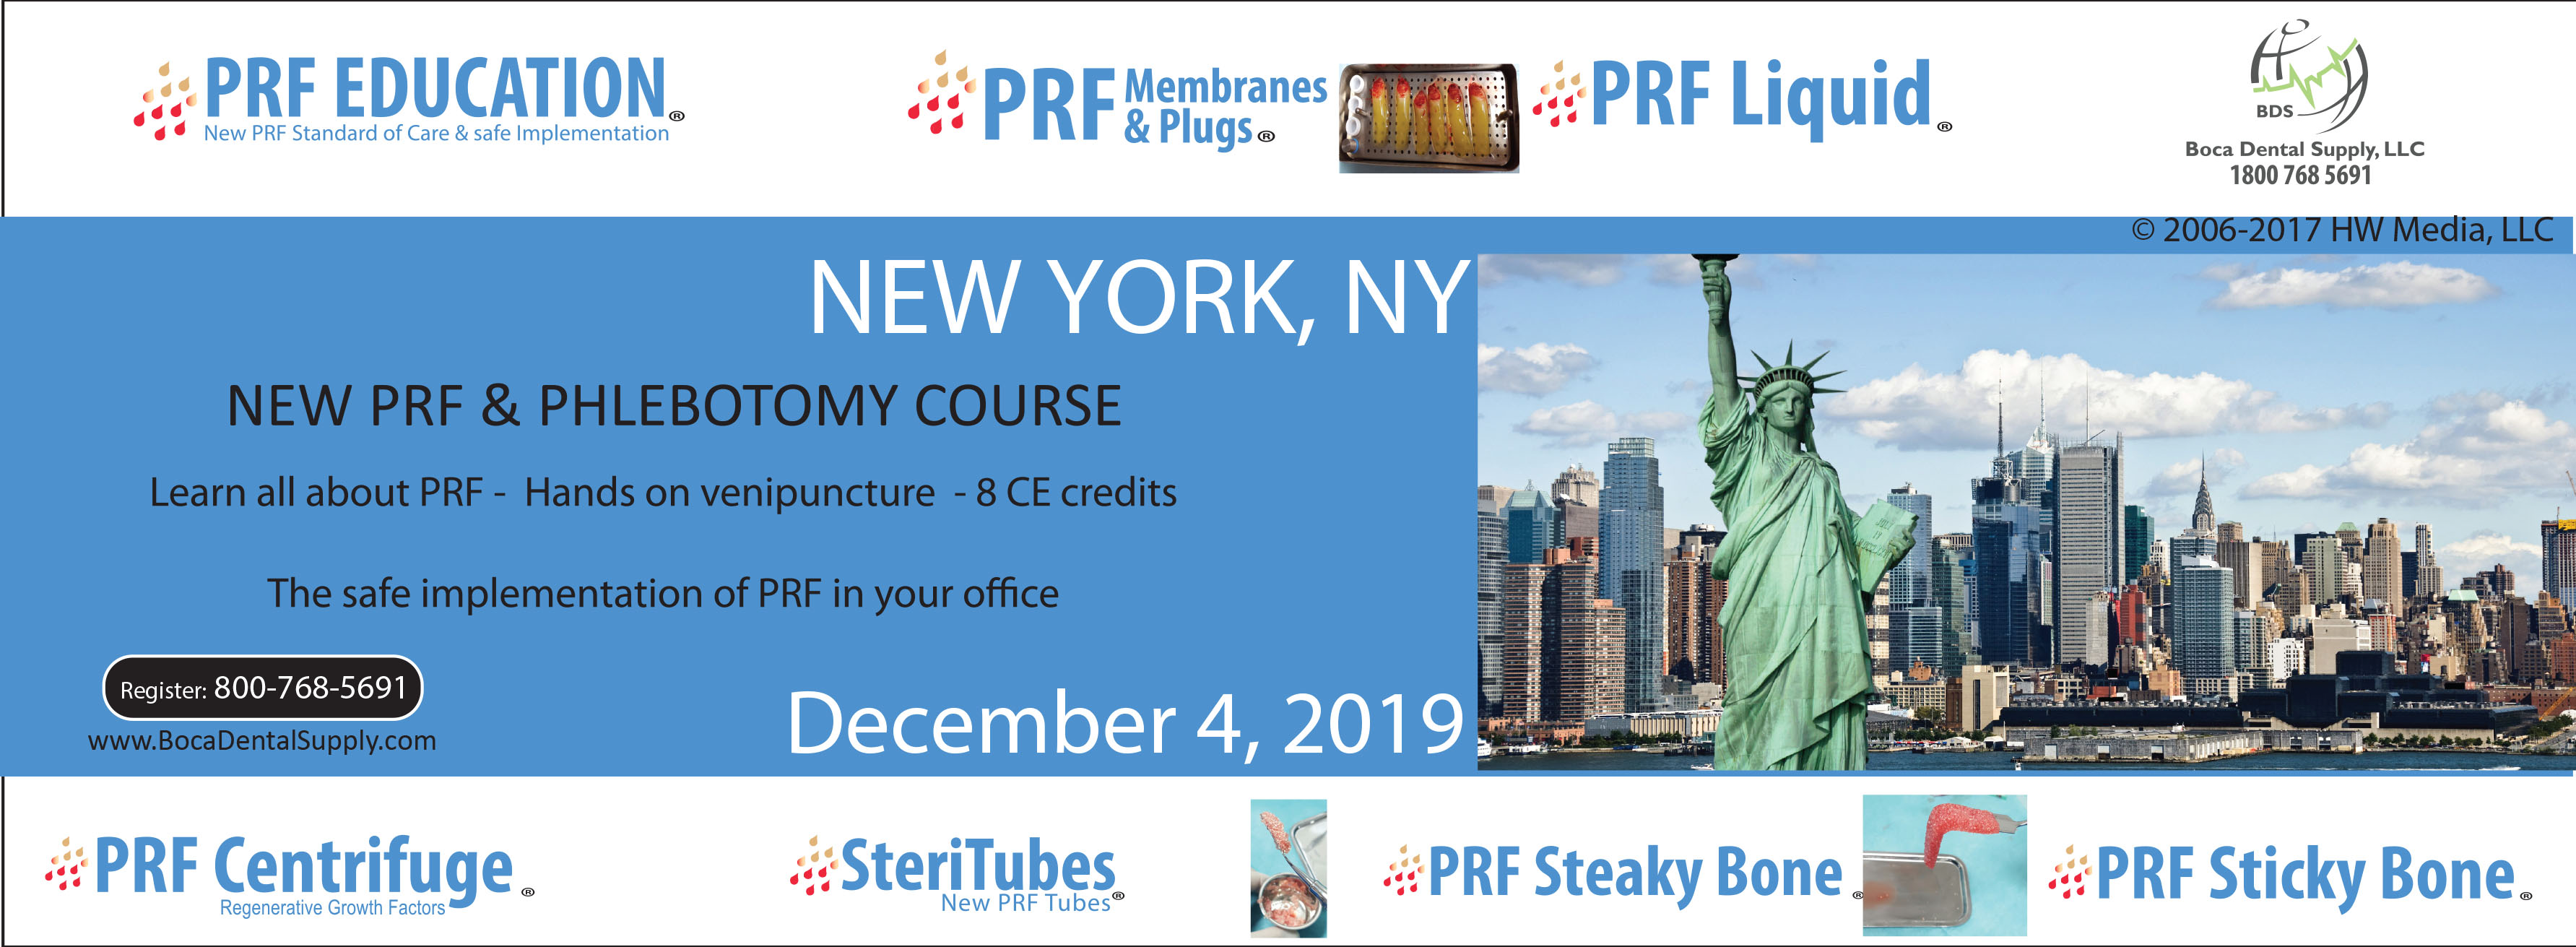 prf-course-ny-dec.-2019.jpg